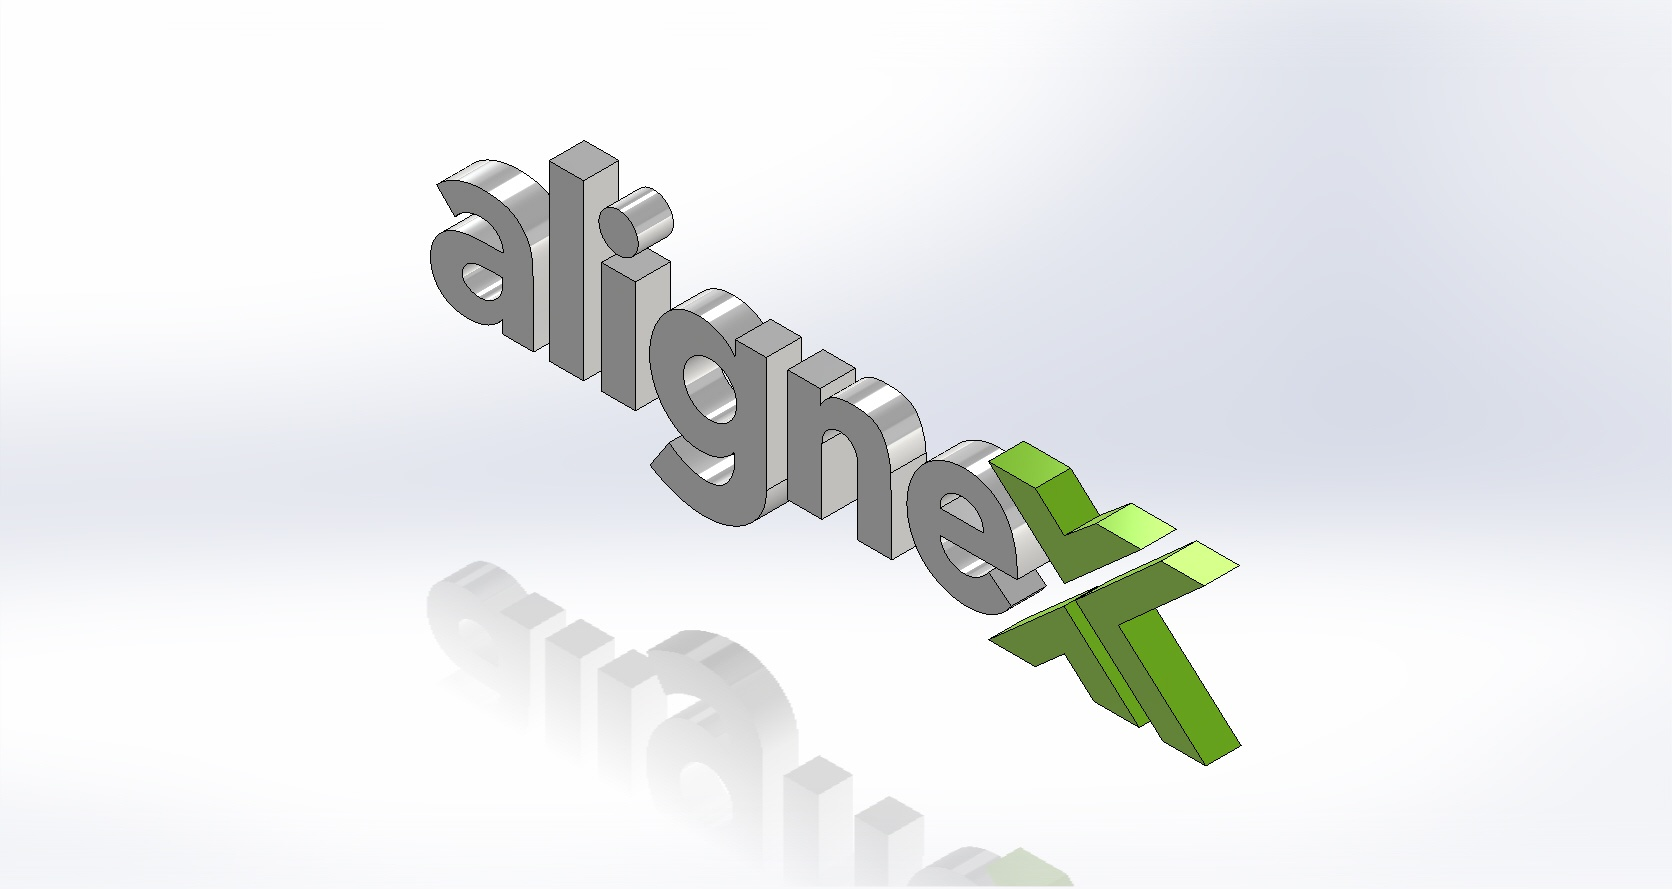 Alignex Logo Sketched in SOLIDWORKS Sketcher